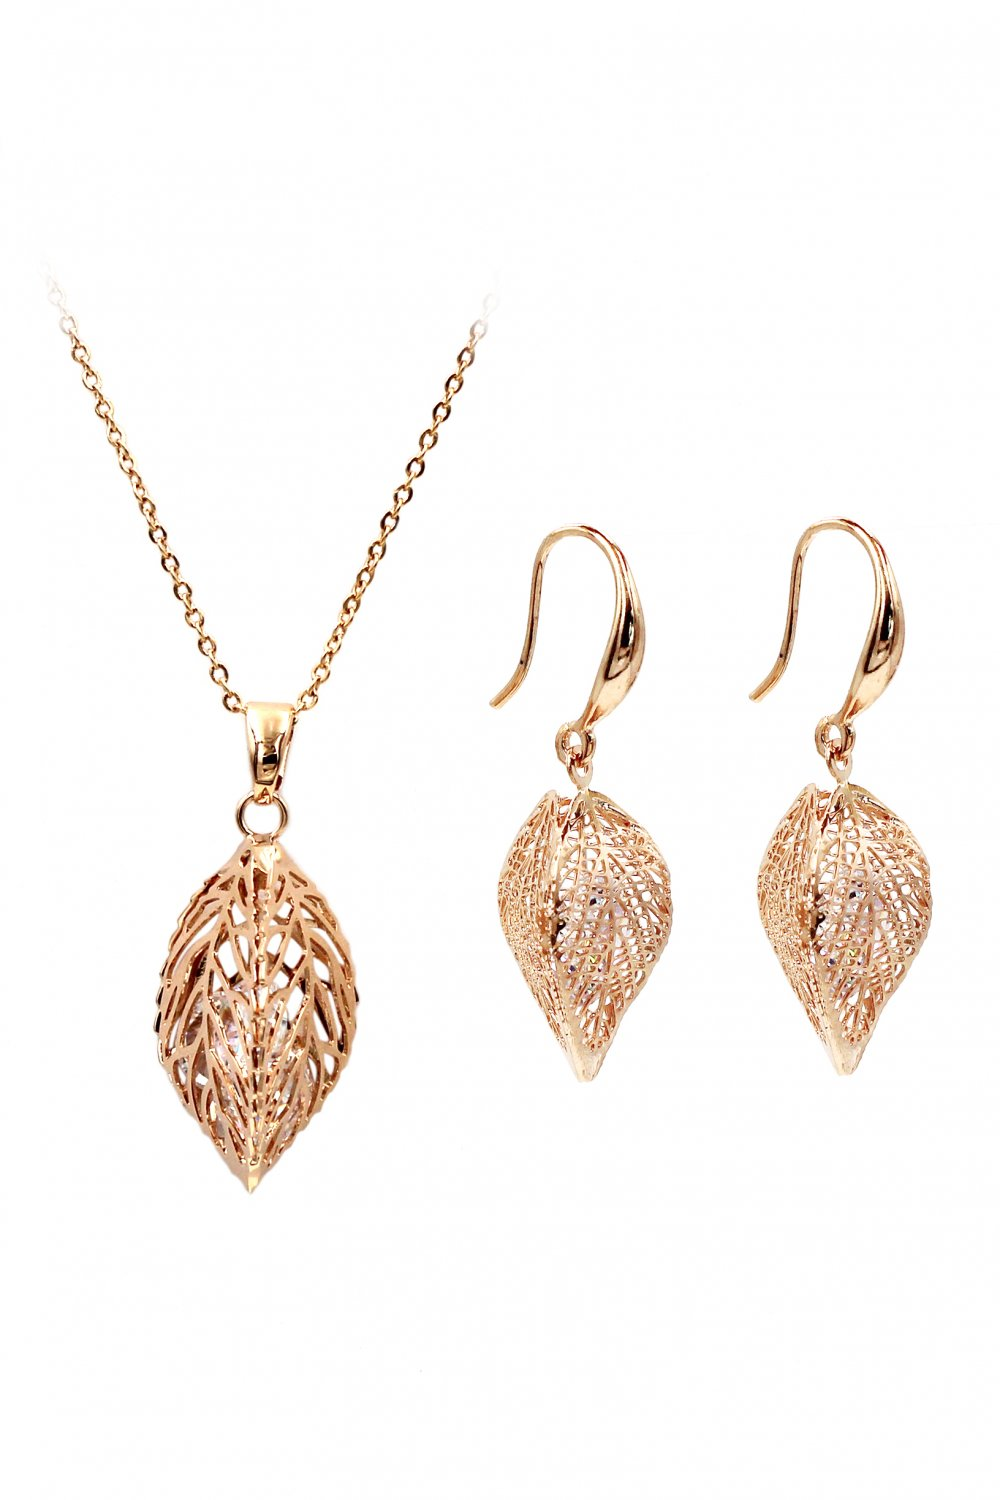 Lady foliage crystal rose gold set